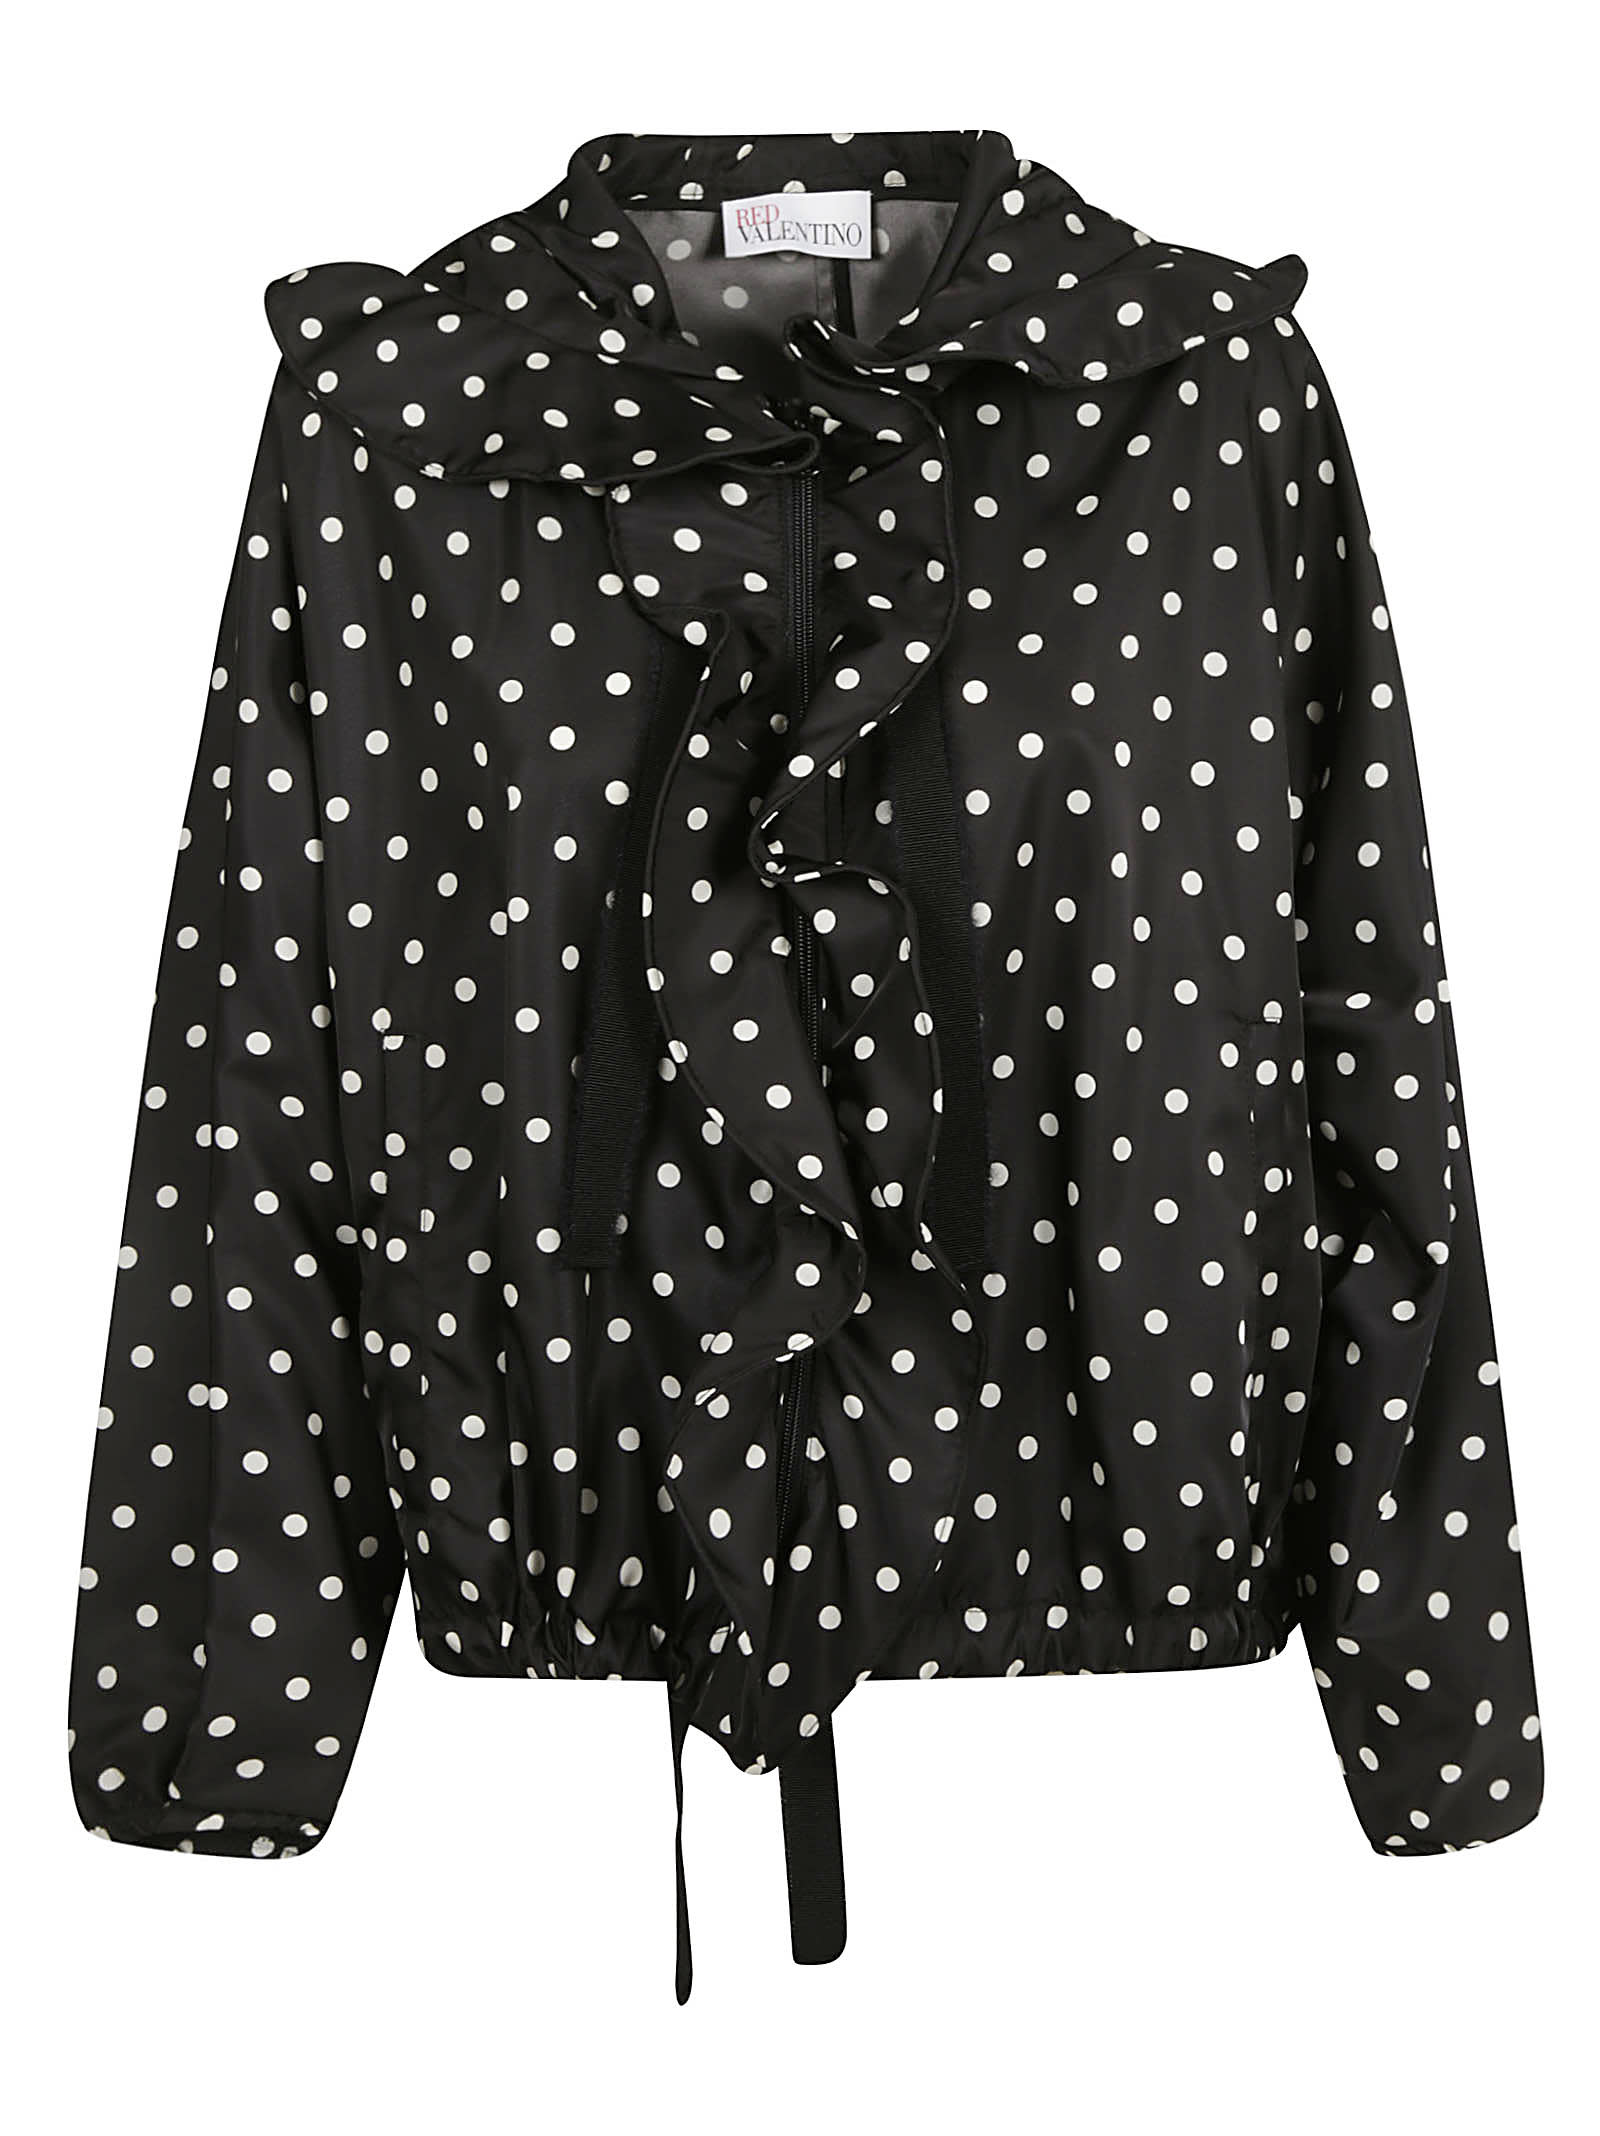 RED Valentino Dotted Print Blouse